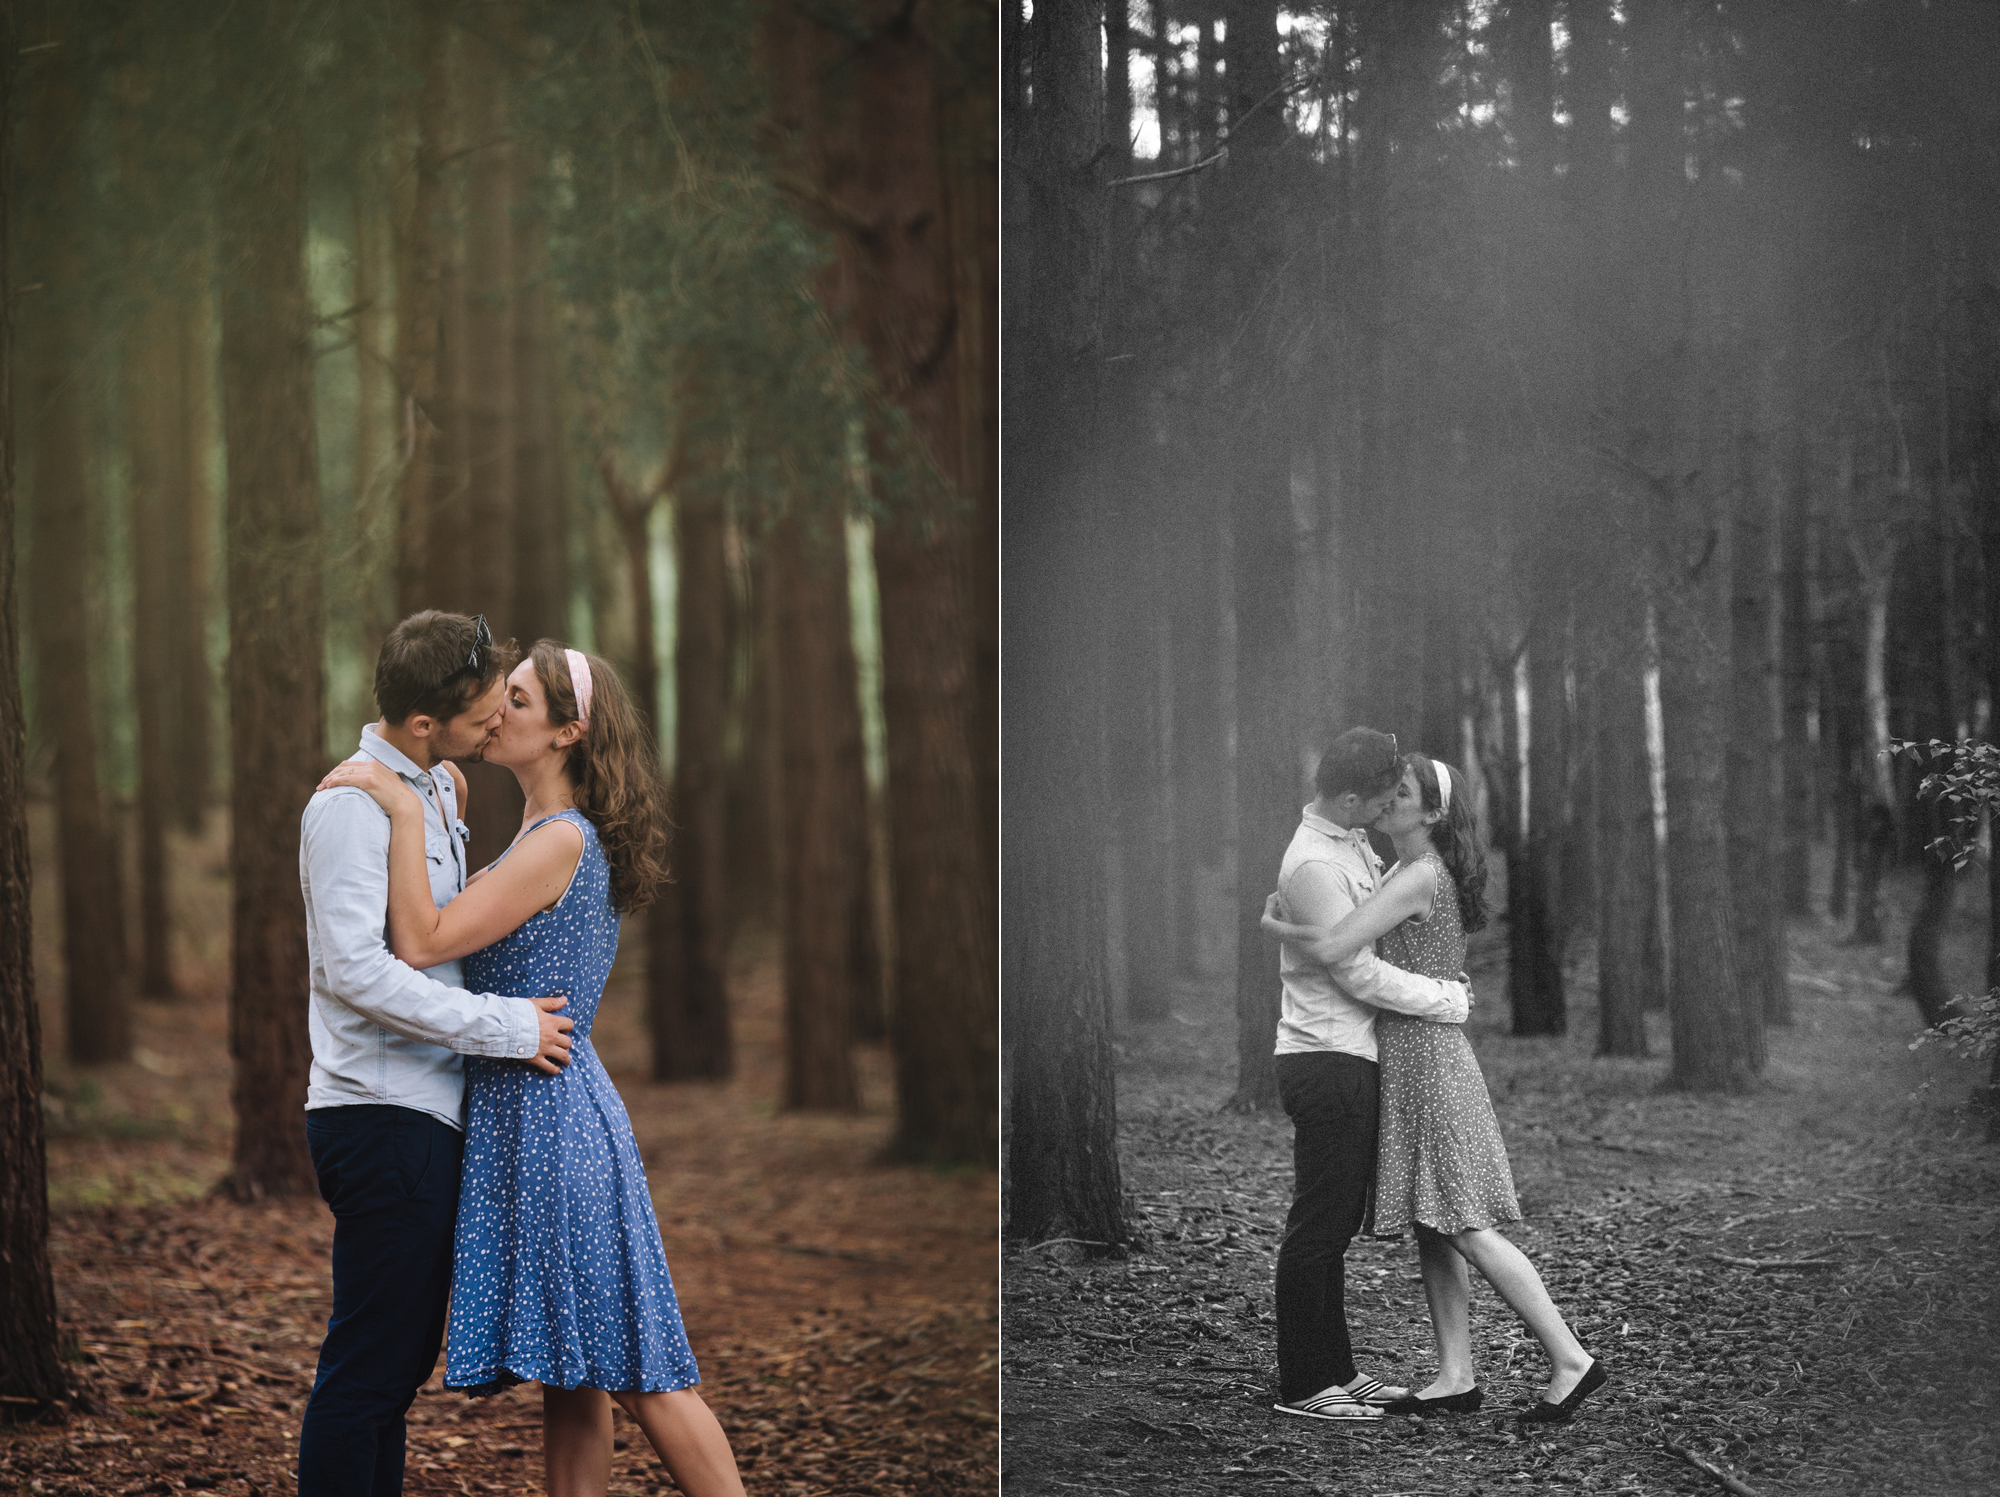 Hermione McCosh Photography engagement photo in wood. dreamy creative portraits